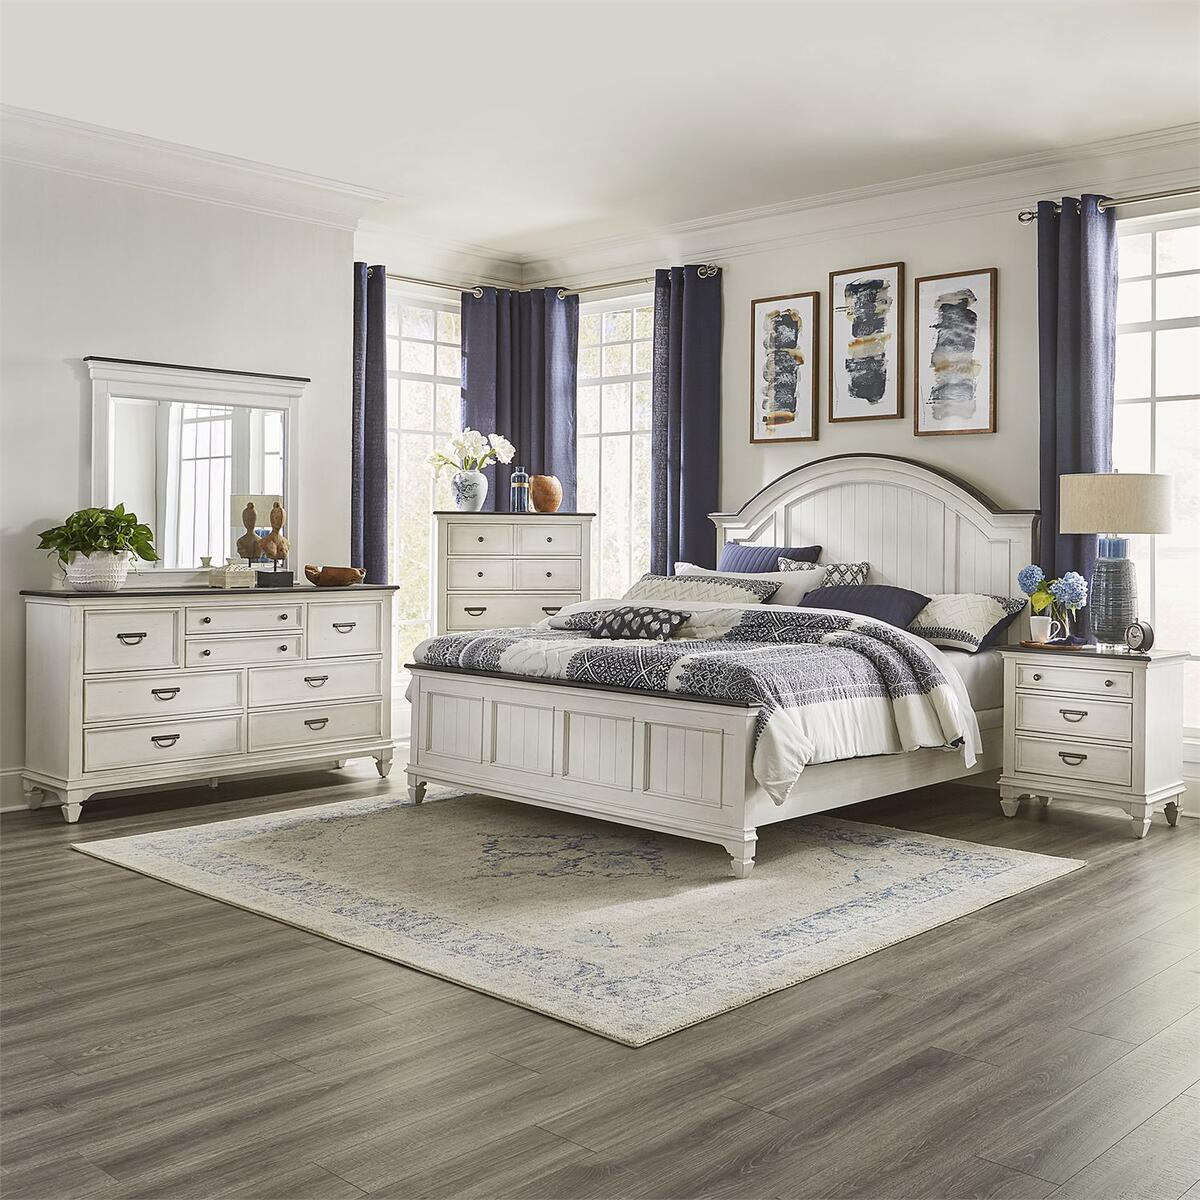 Queen Arched Panel Bed, Dresser & Mirror, Chest, Night Stand